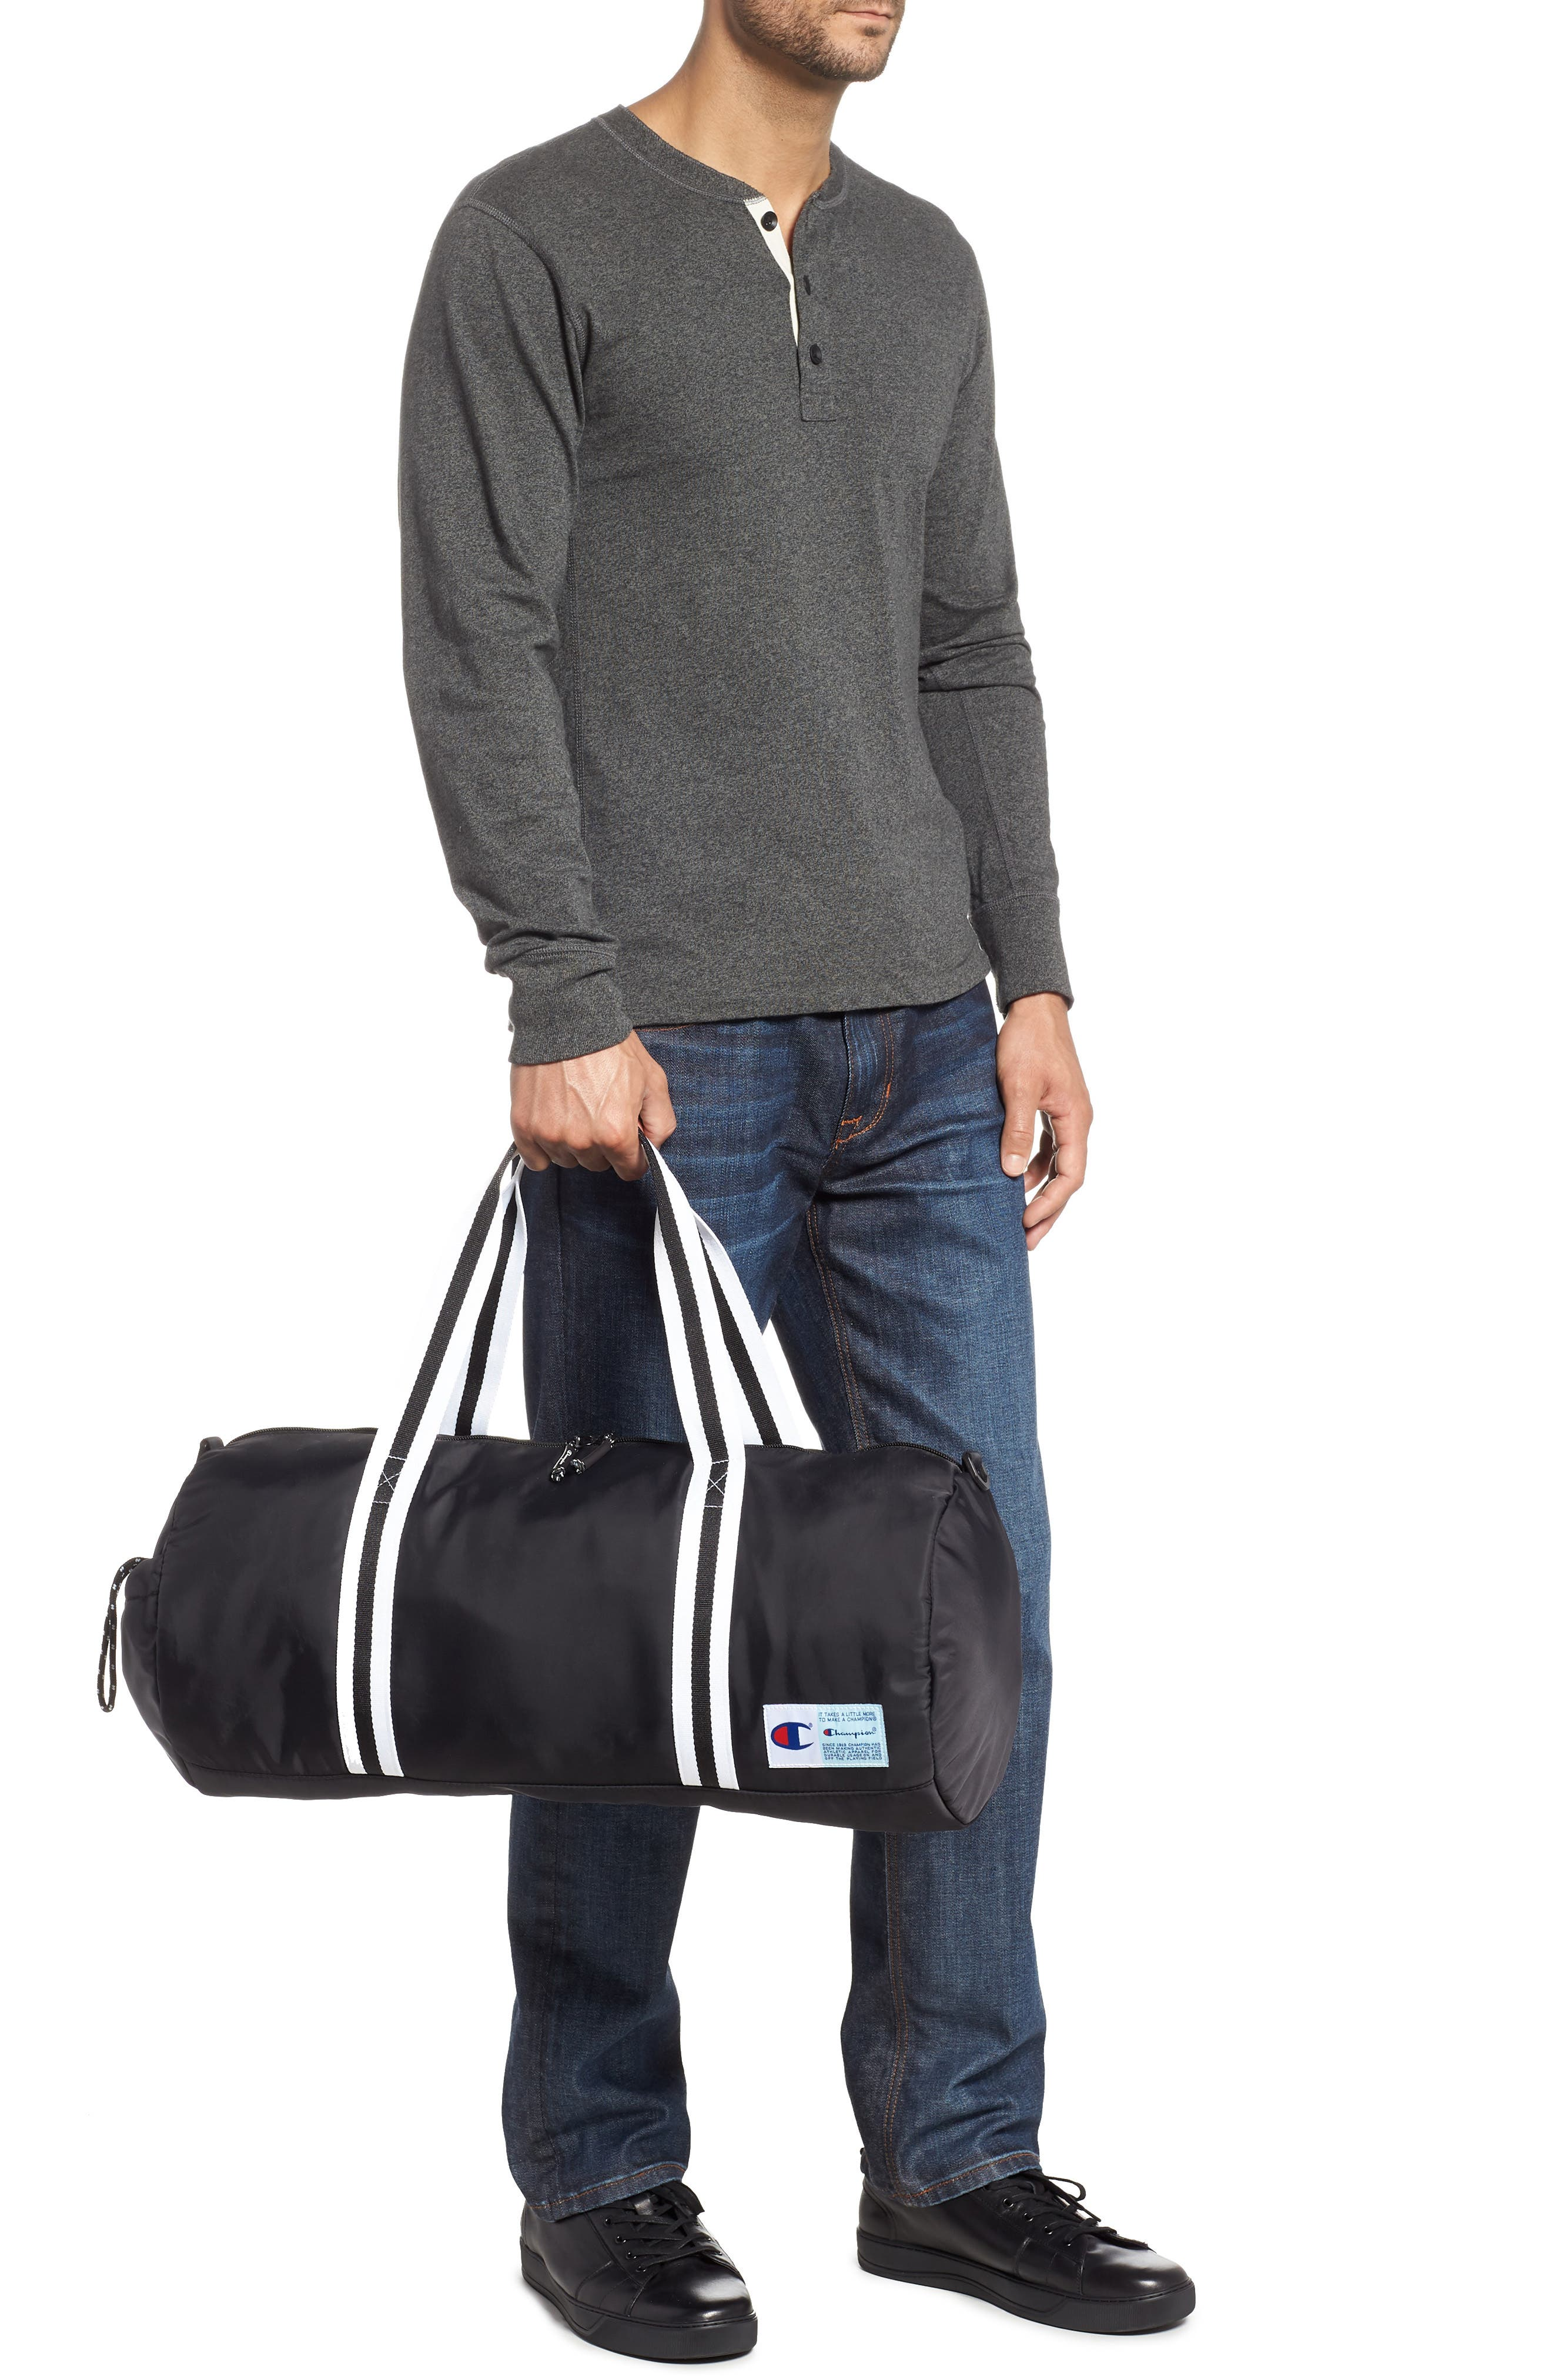 Free Form Duffel Bag,                             Alternate thumbnail 2, color,                             BLACK